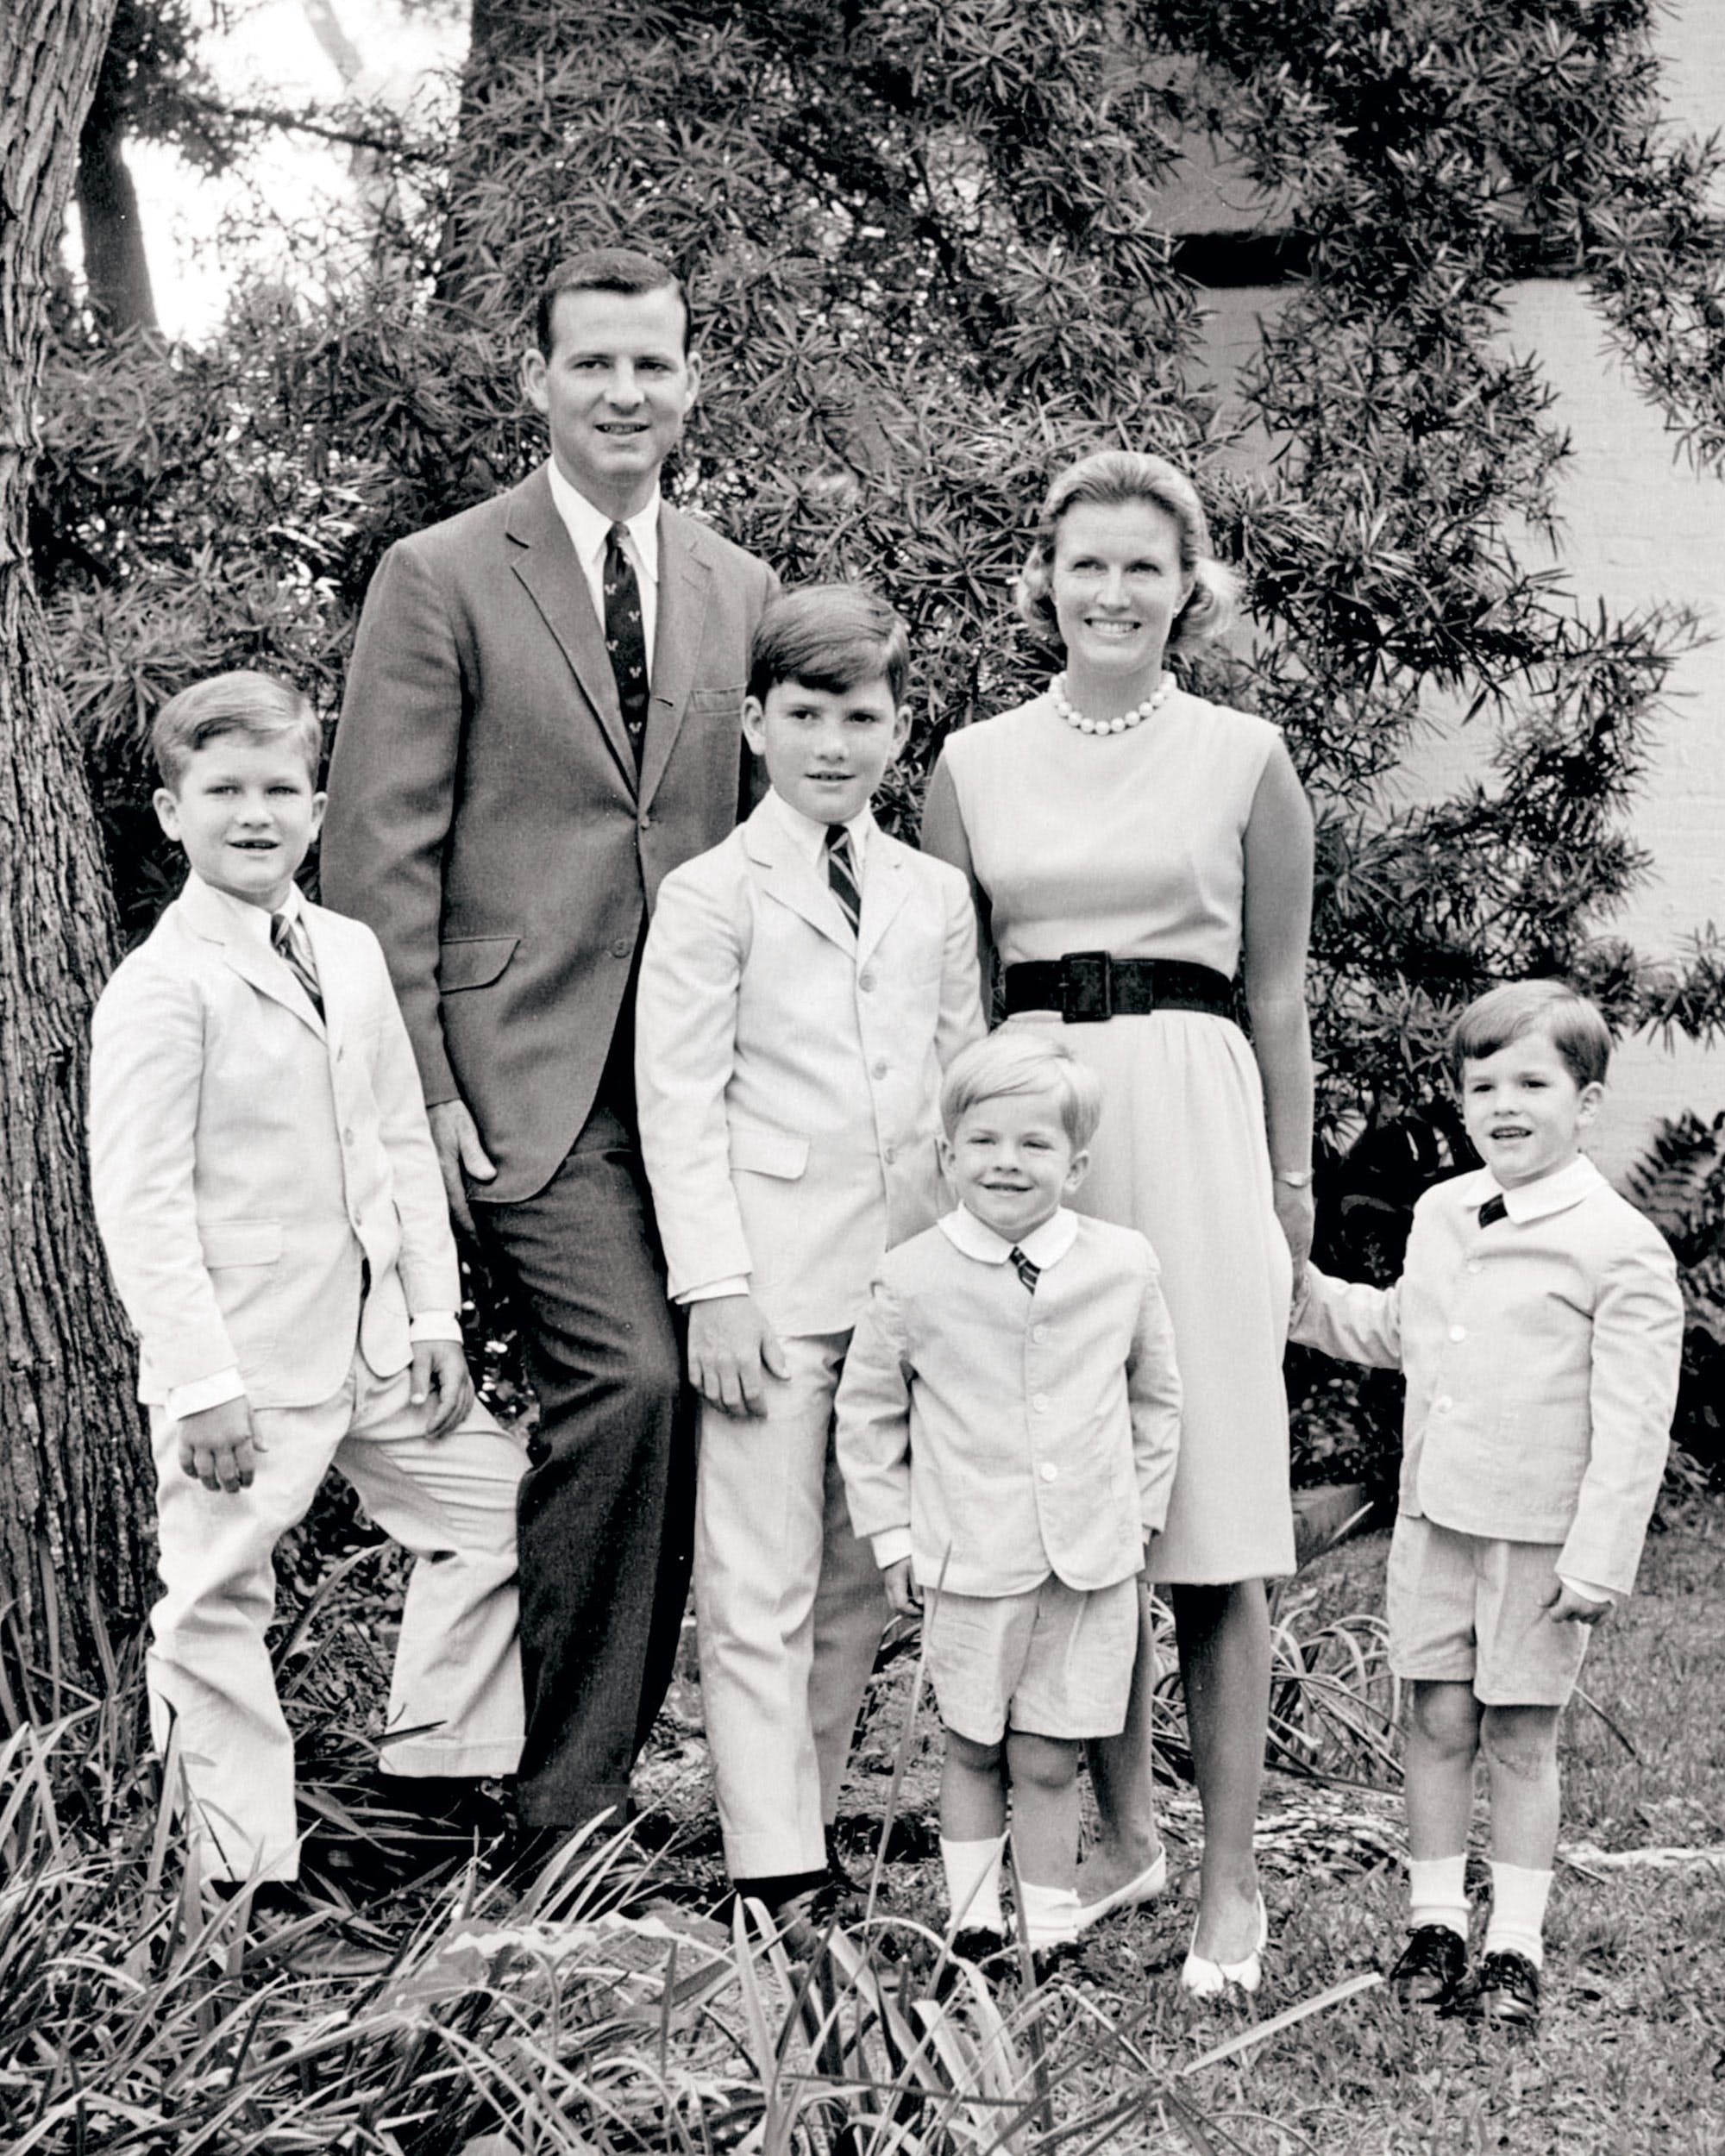 James and Mary Stuart Baker with their four boys in Houston in 1964.